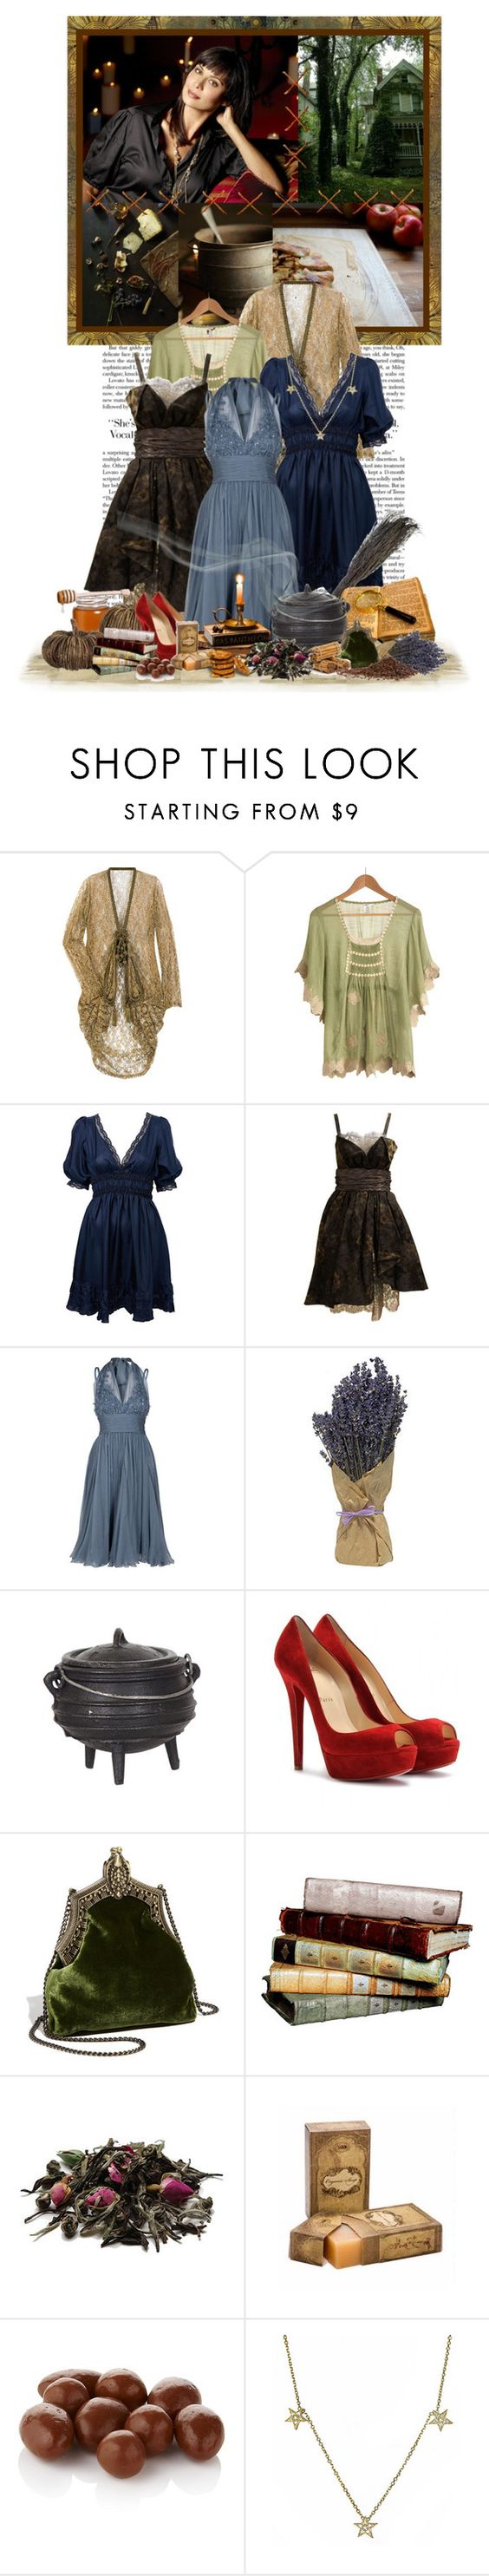 77/100 - Catherine Bell as Cassandra Nightingale by cherrygoodday on Polyvore featuring Miss Selfridge, Christian Lacroix, Elie Saab, One Vintage, Christian Louboutin, House of Harlow 1960, KC Designs, Fauchon, the good witch and movie